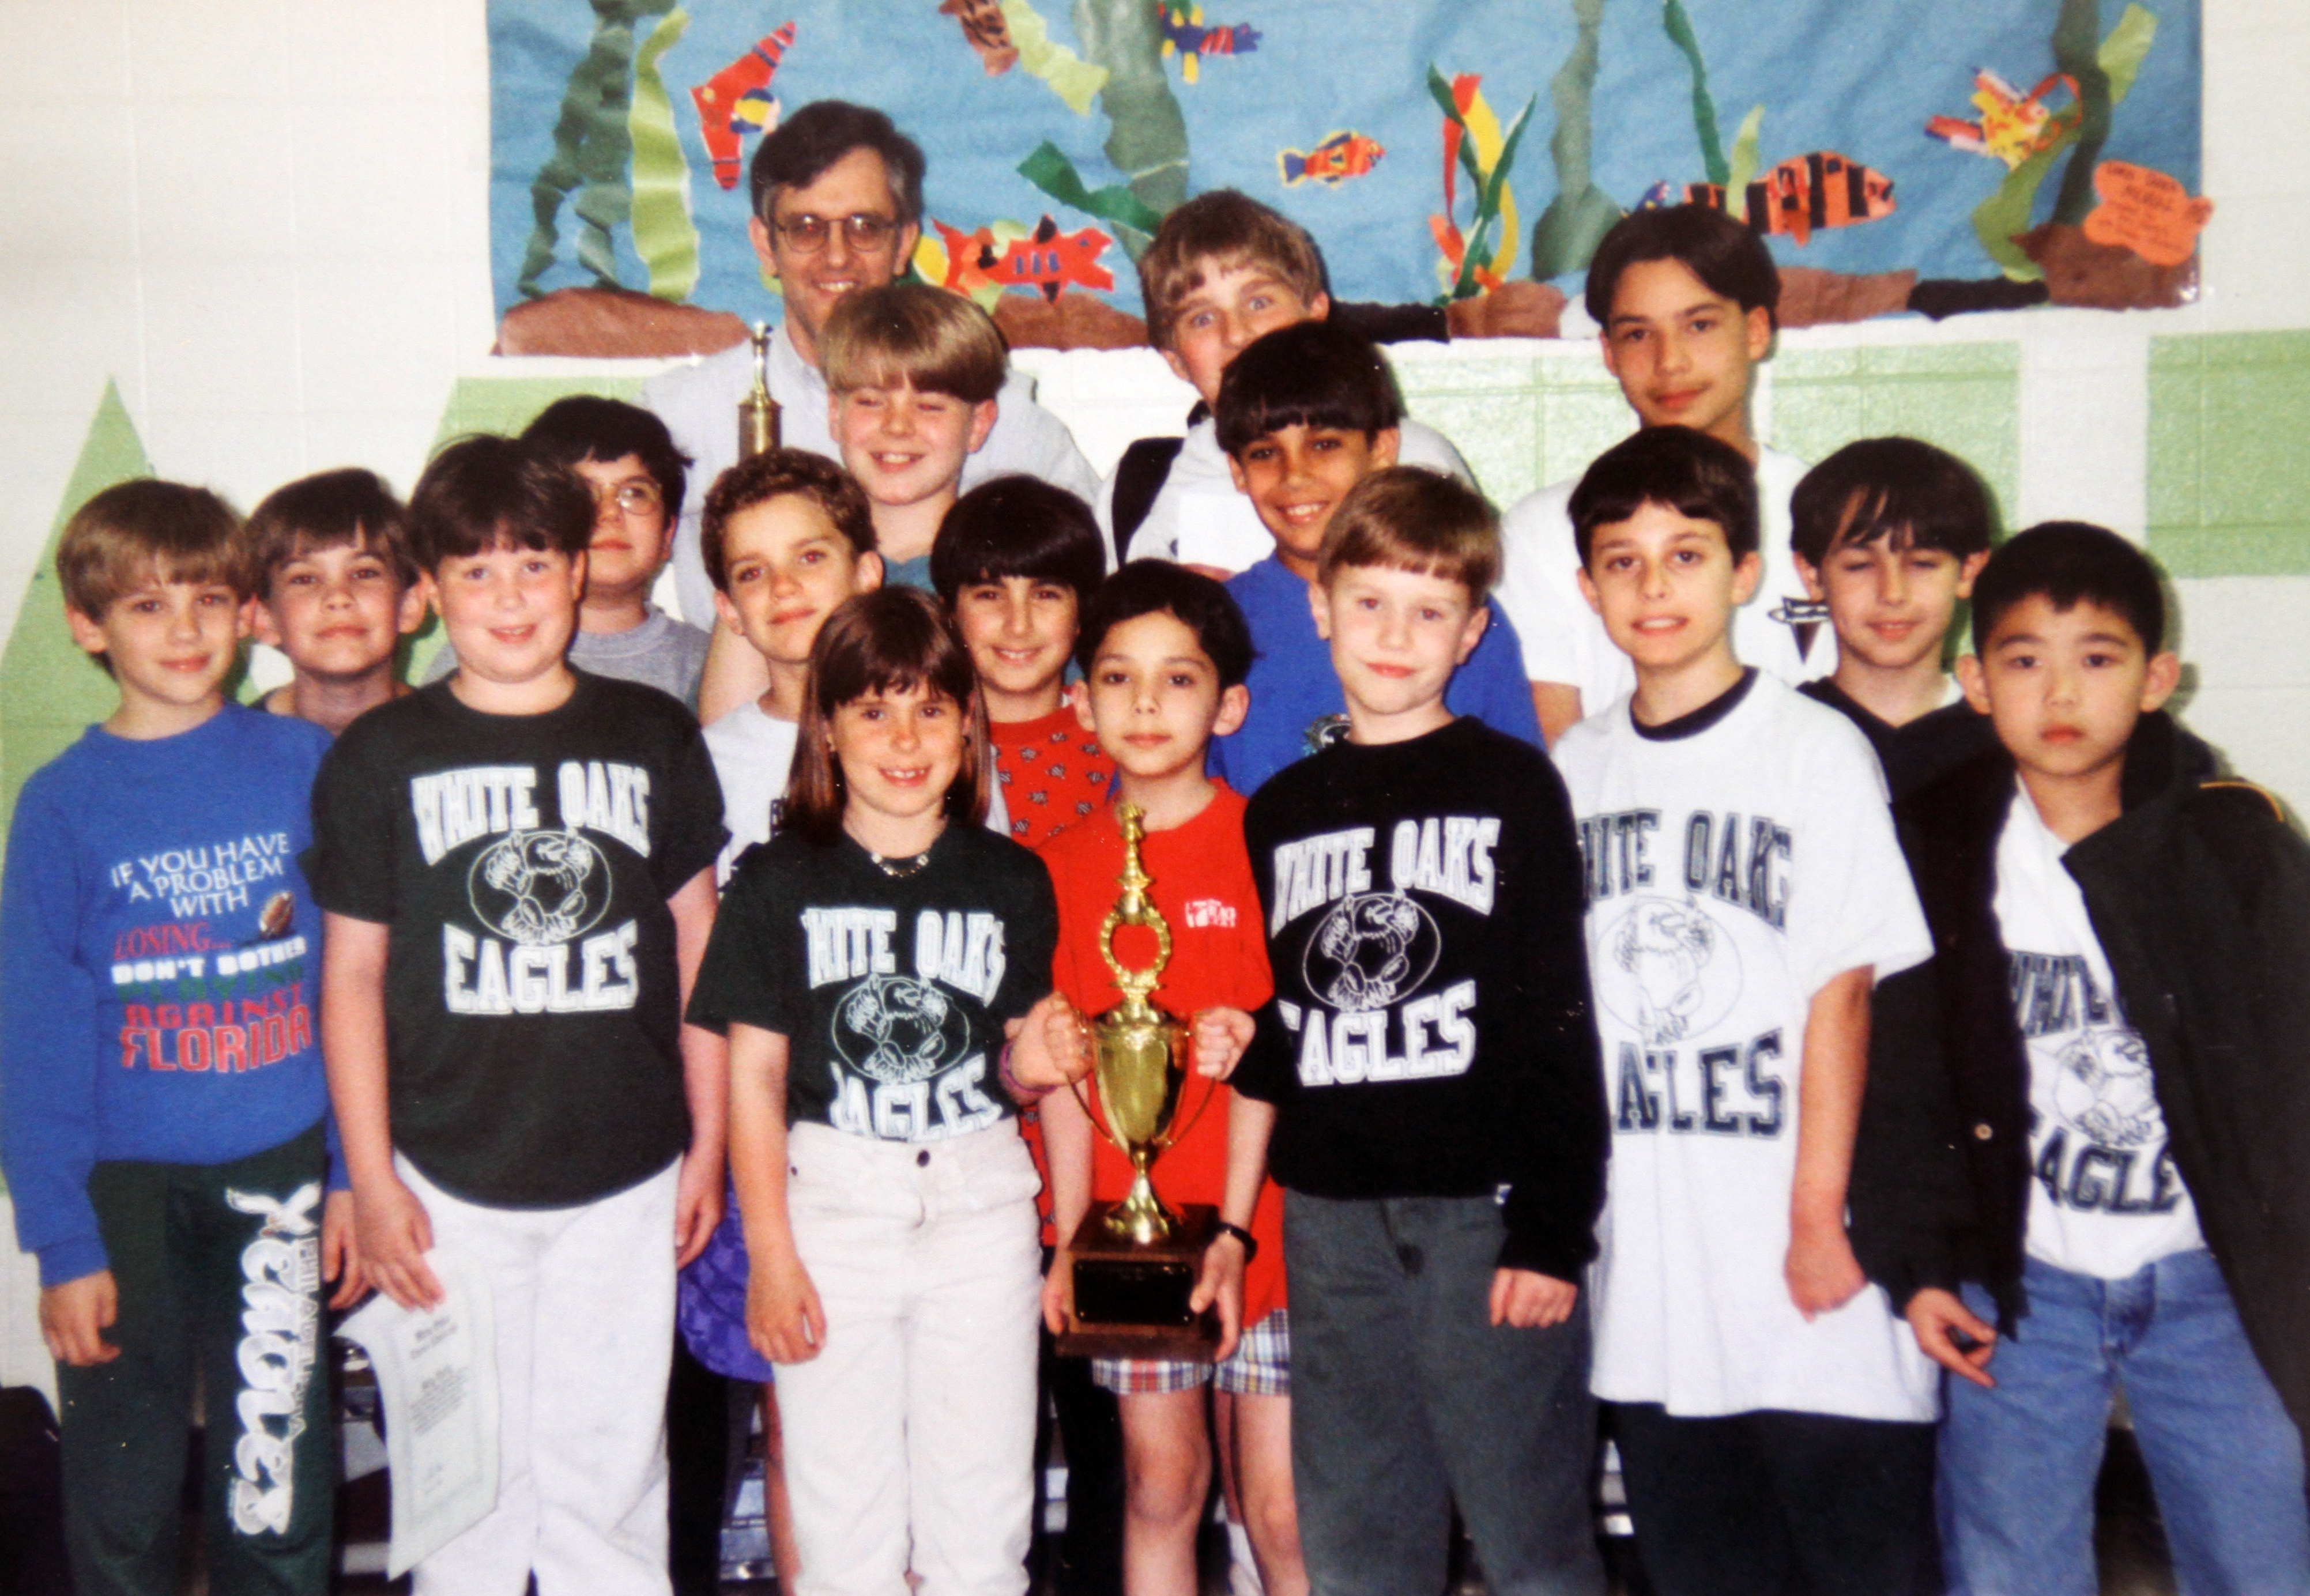 Photograph of the championship-winning chess team posing with their trophy.